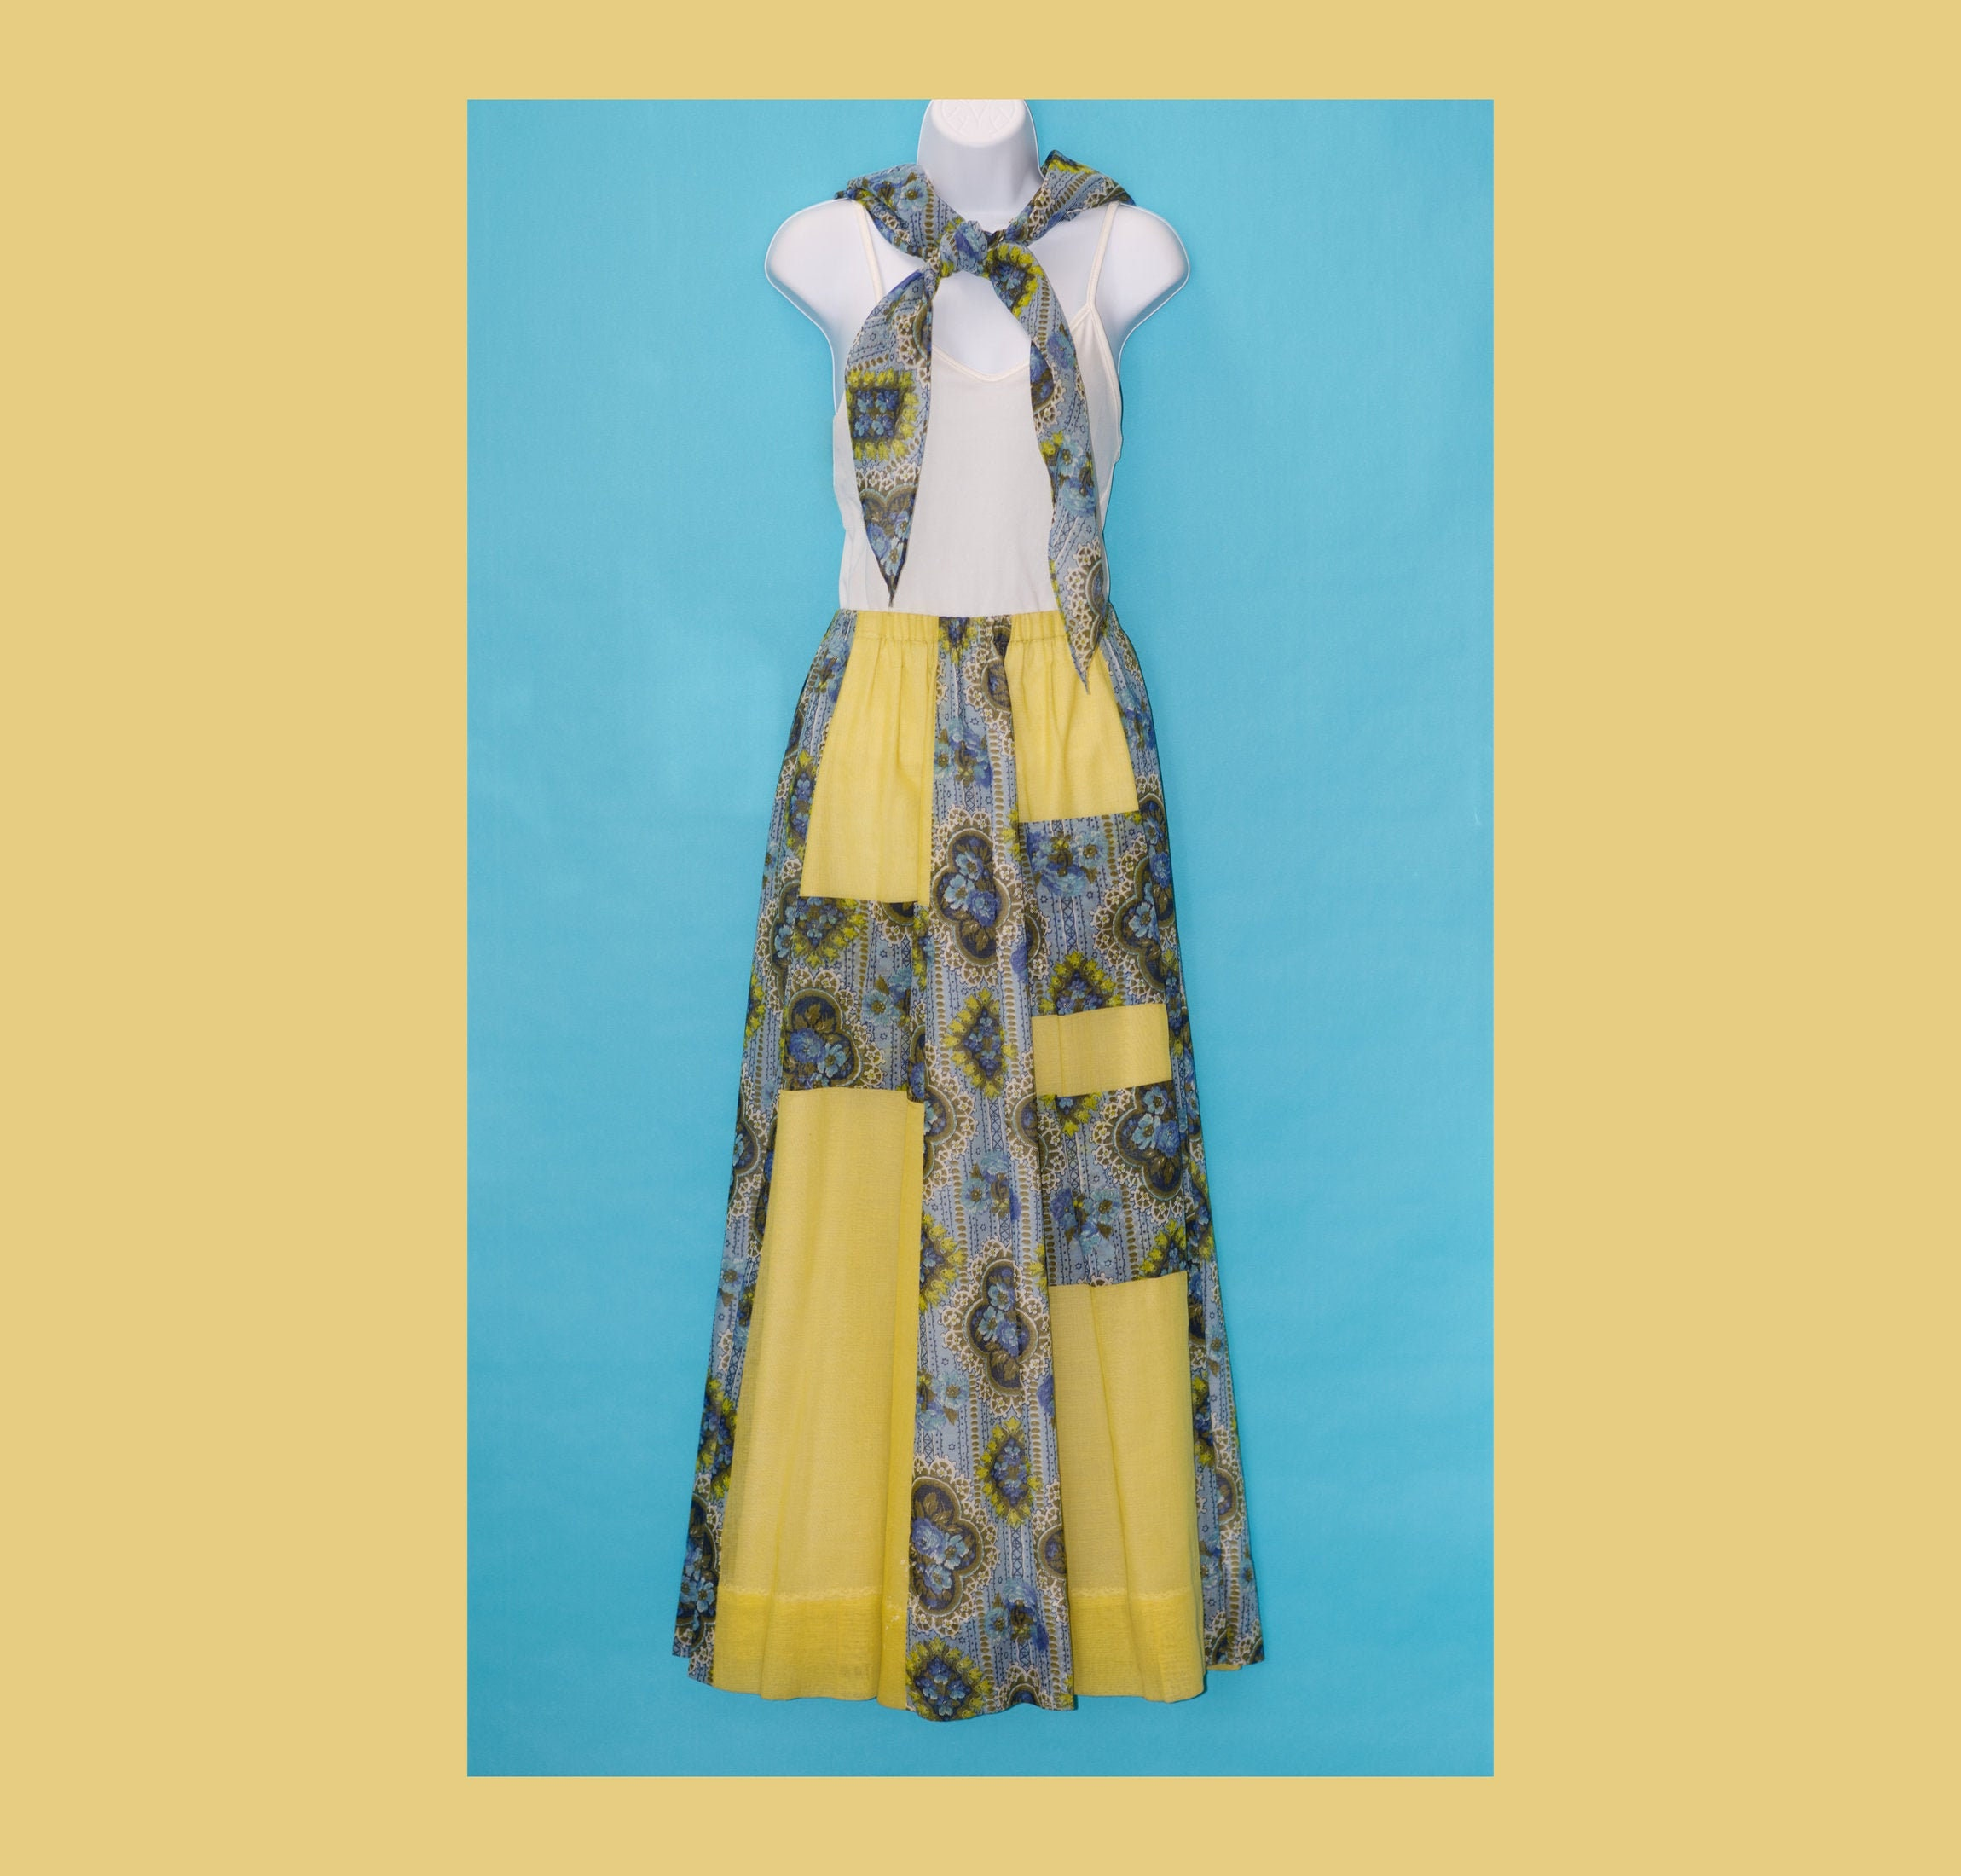 Vintage Scarf Styles -1920s to 1960s Vintage 1970S Patchwork Maxi Skirt With Scarf  Sash By Chessa Davis $0.00 AT vintagedancer.com